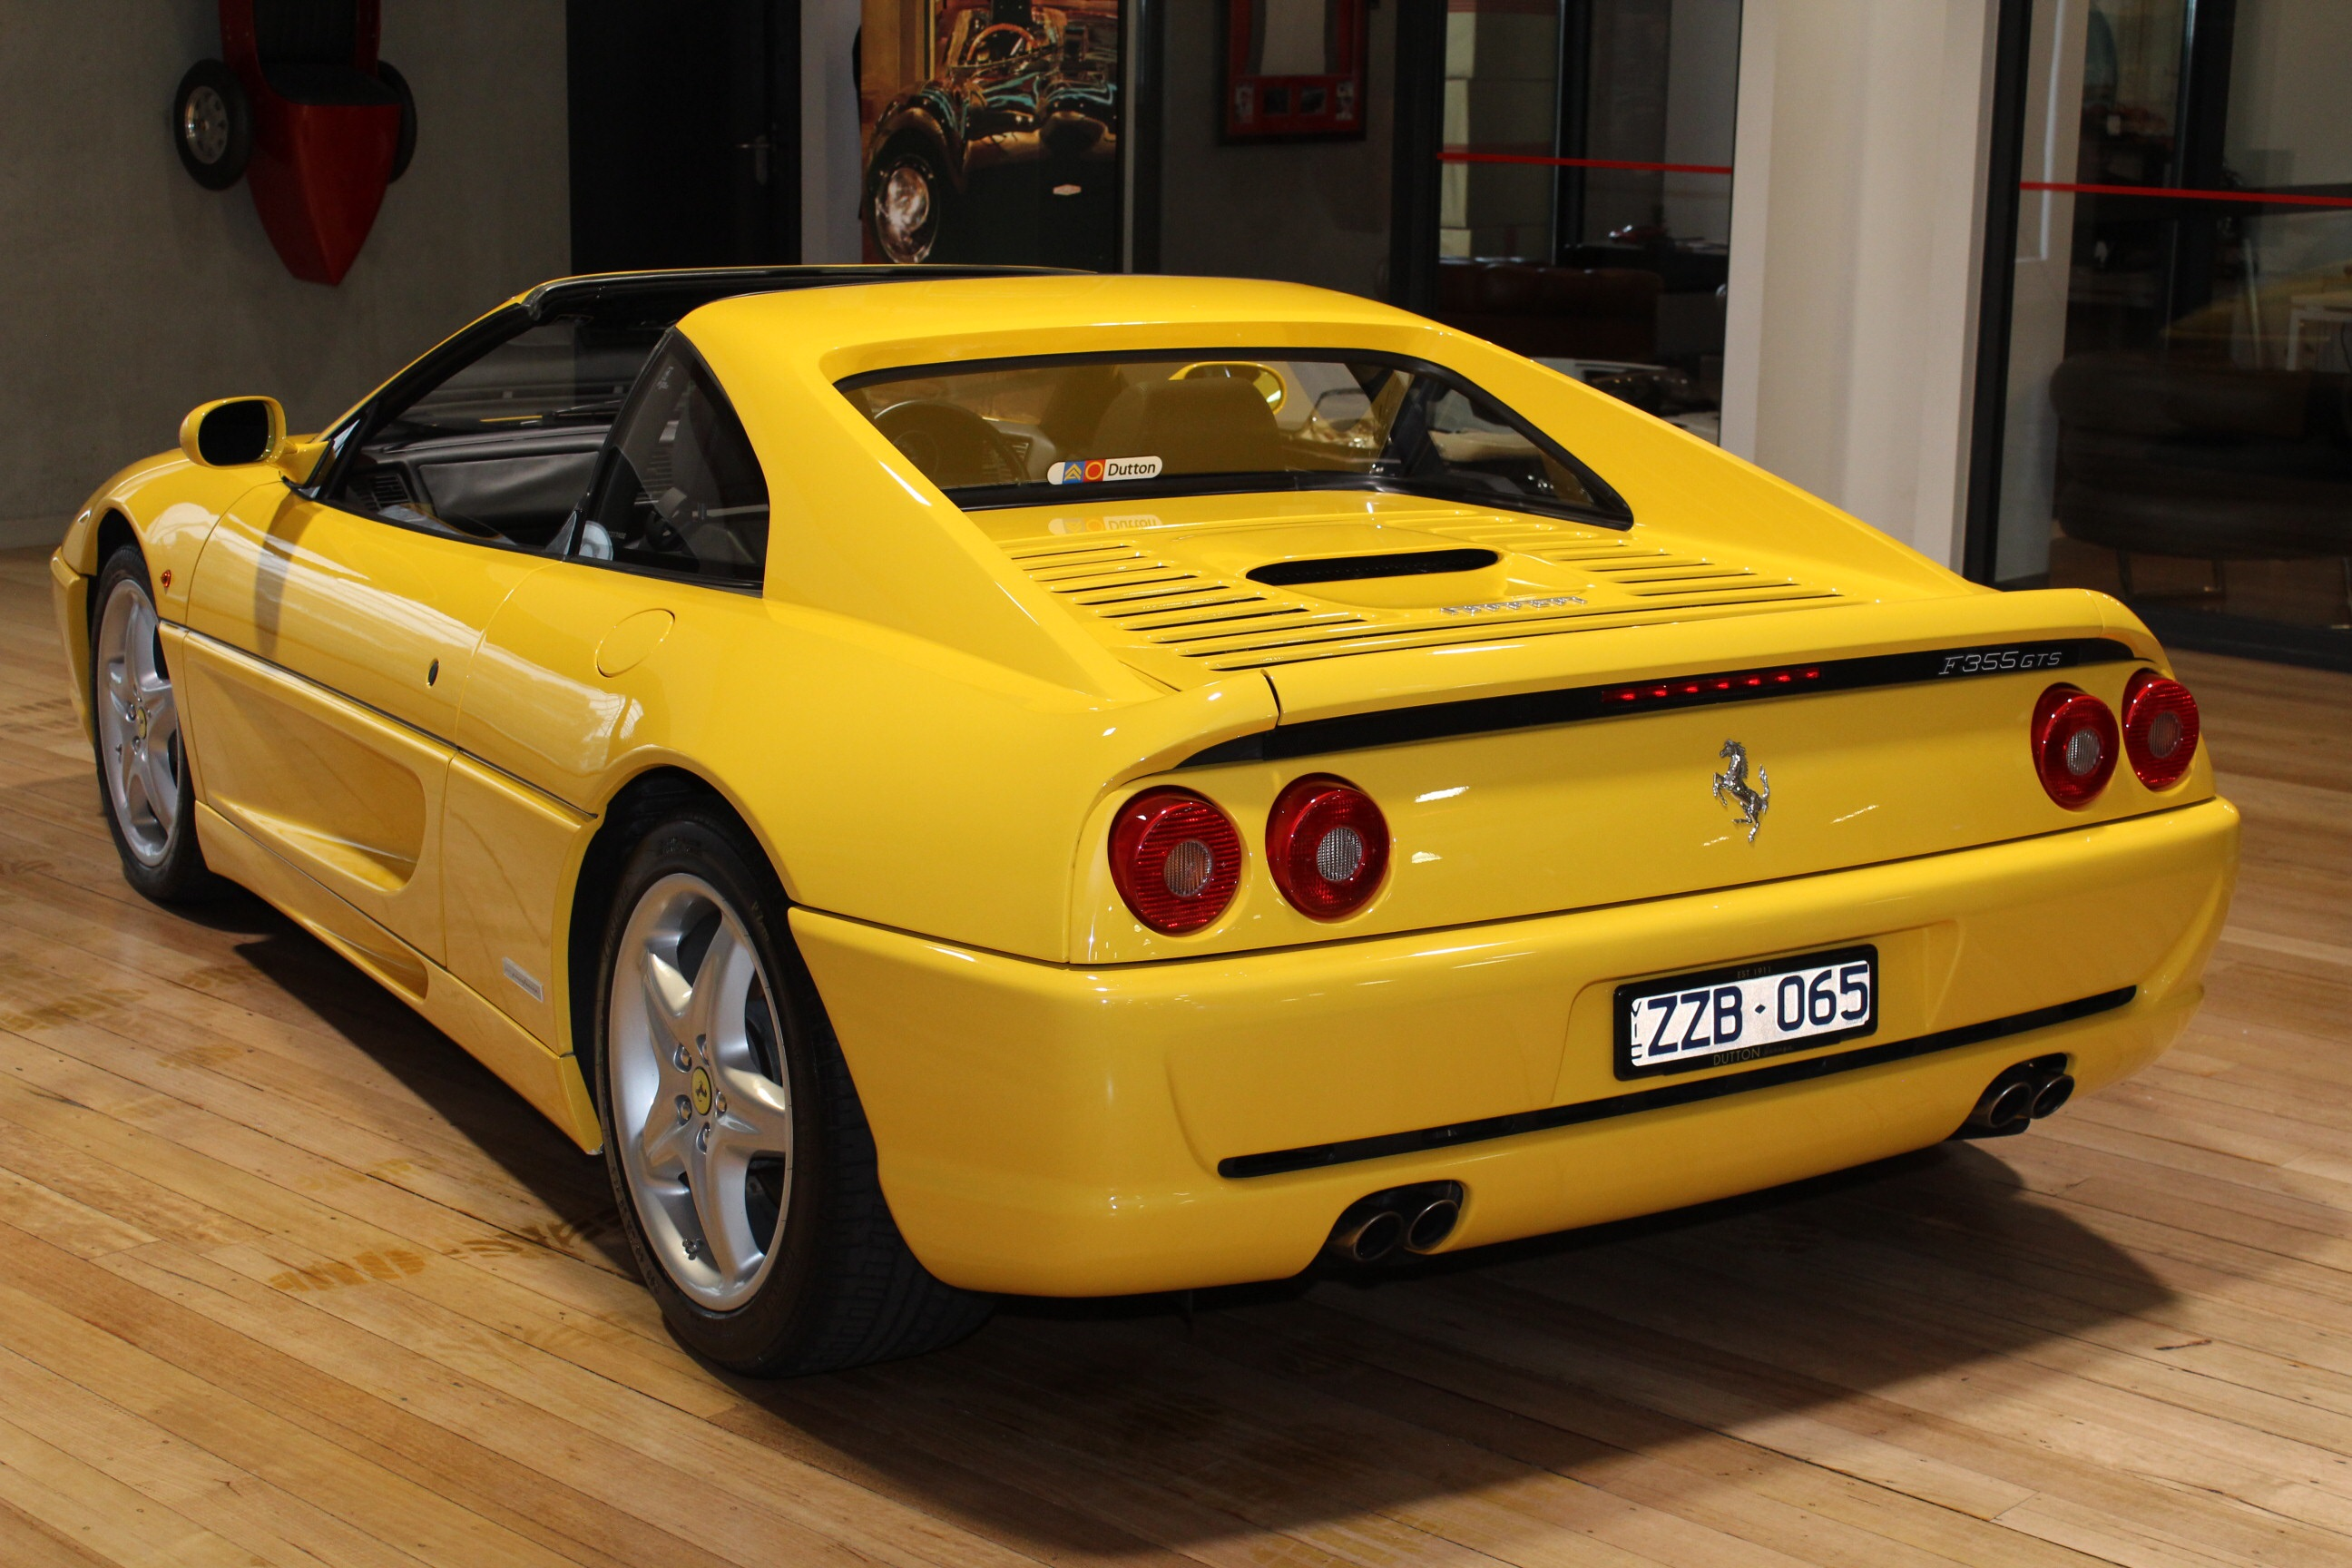 Arguably Pininfarinau0027s Finest Work For Ferrari, This Immaculate F355 GTS  Targa Has Unrivalled Looks And The Sound Of A Race Honed Italian  Thoroughbred.